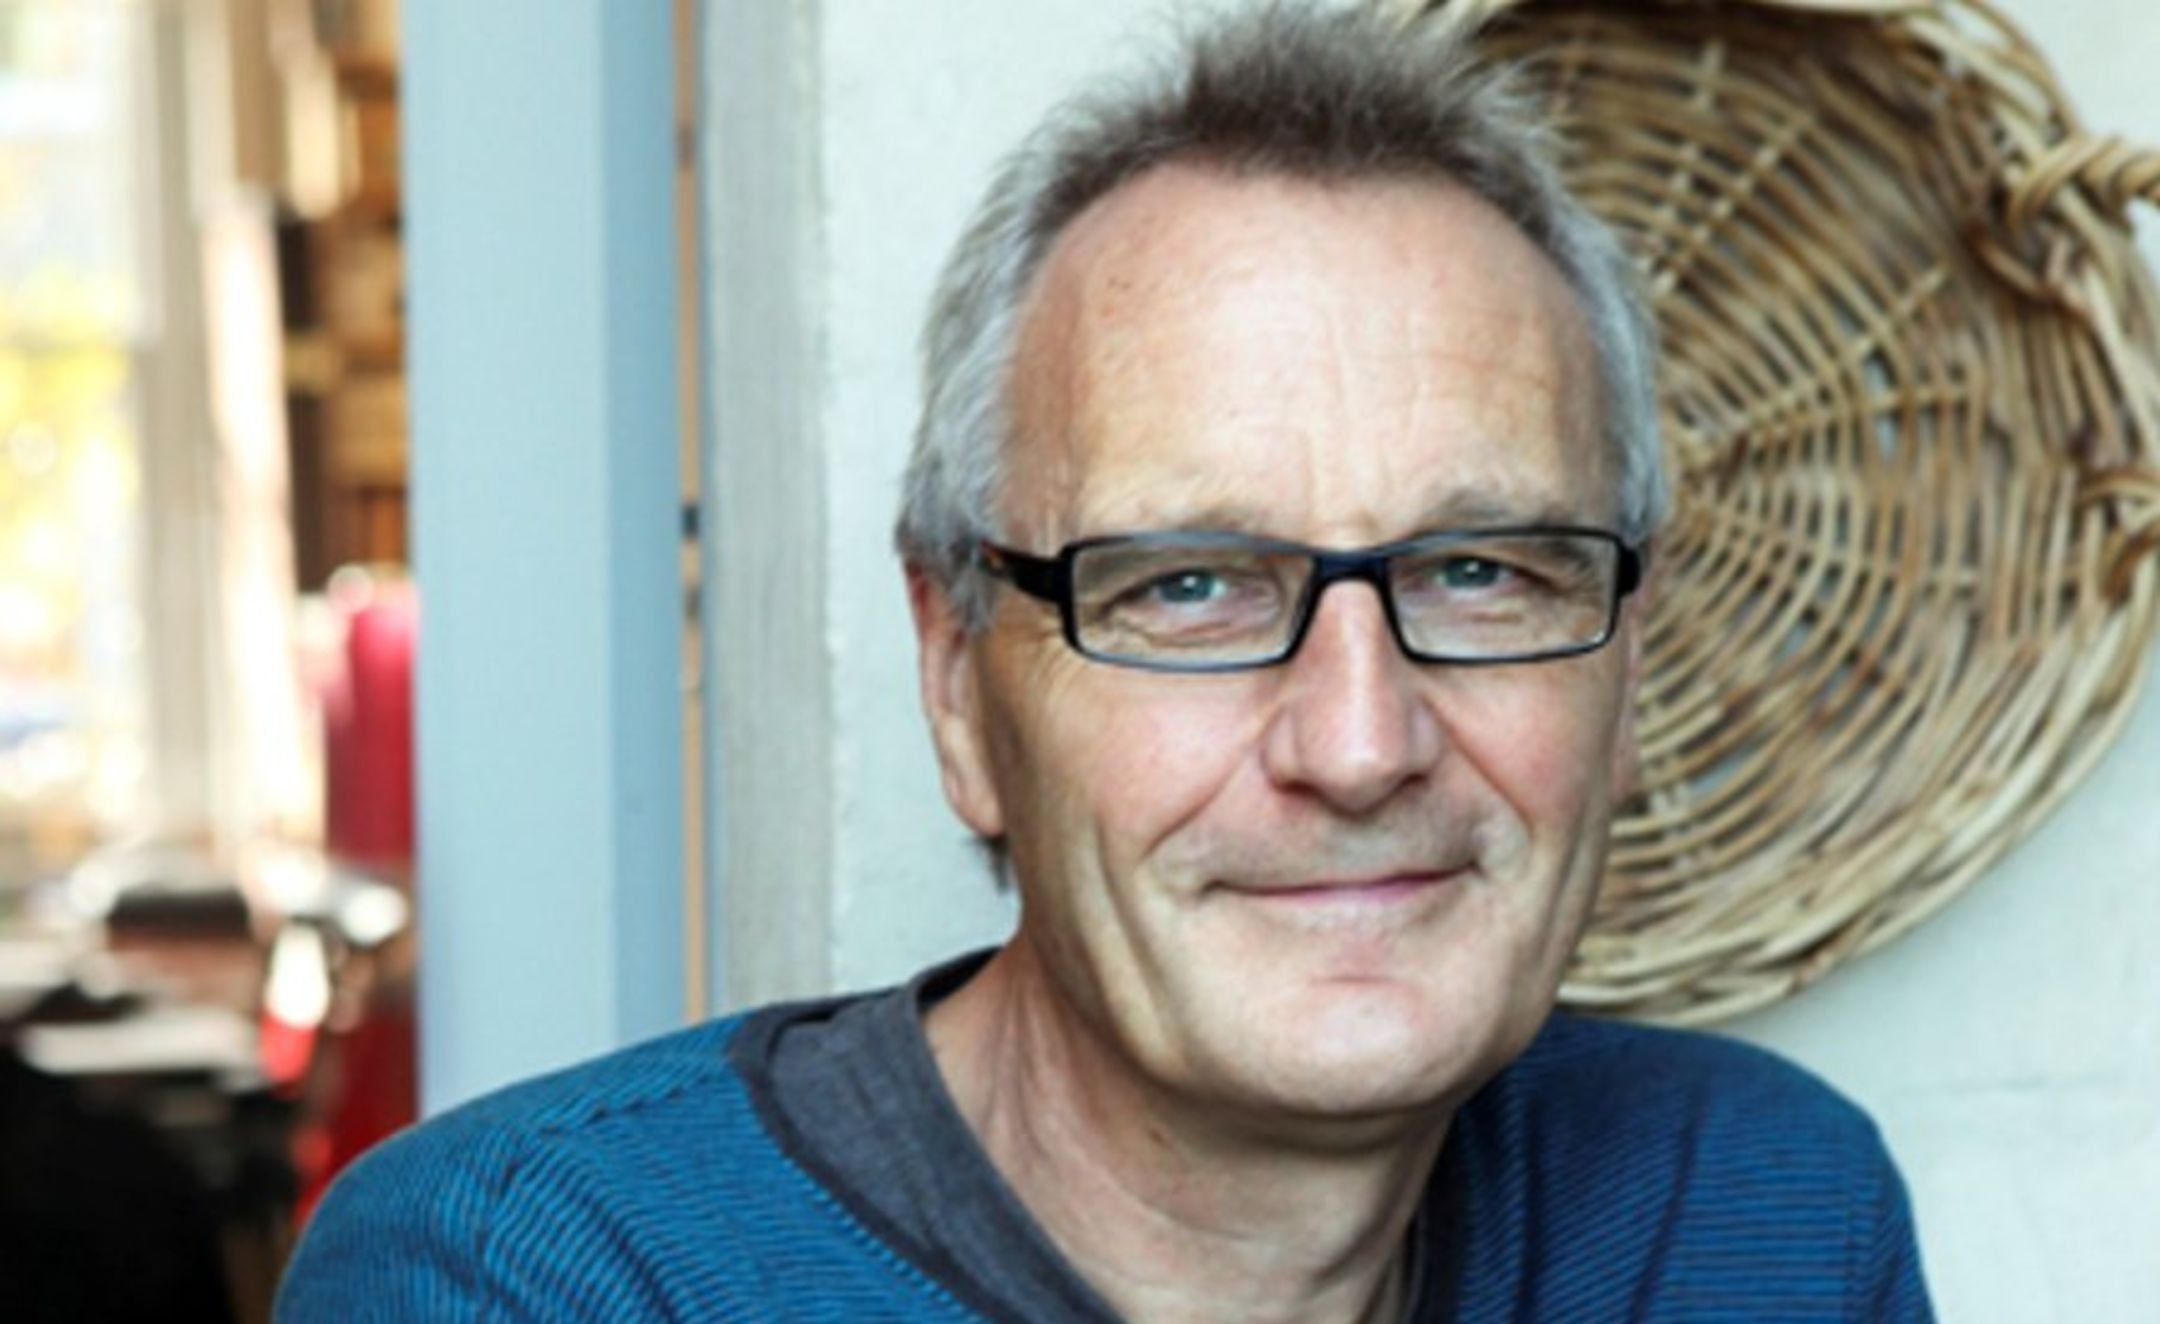 A photo of the author Jeremy Strong